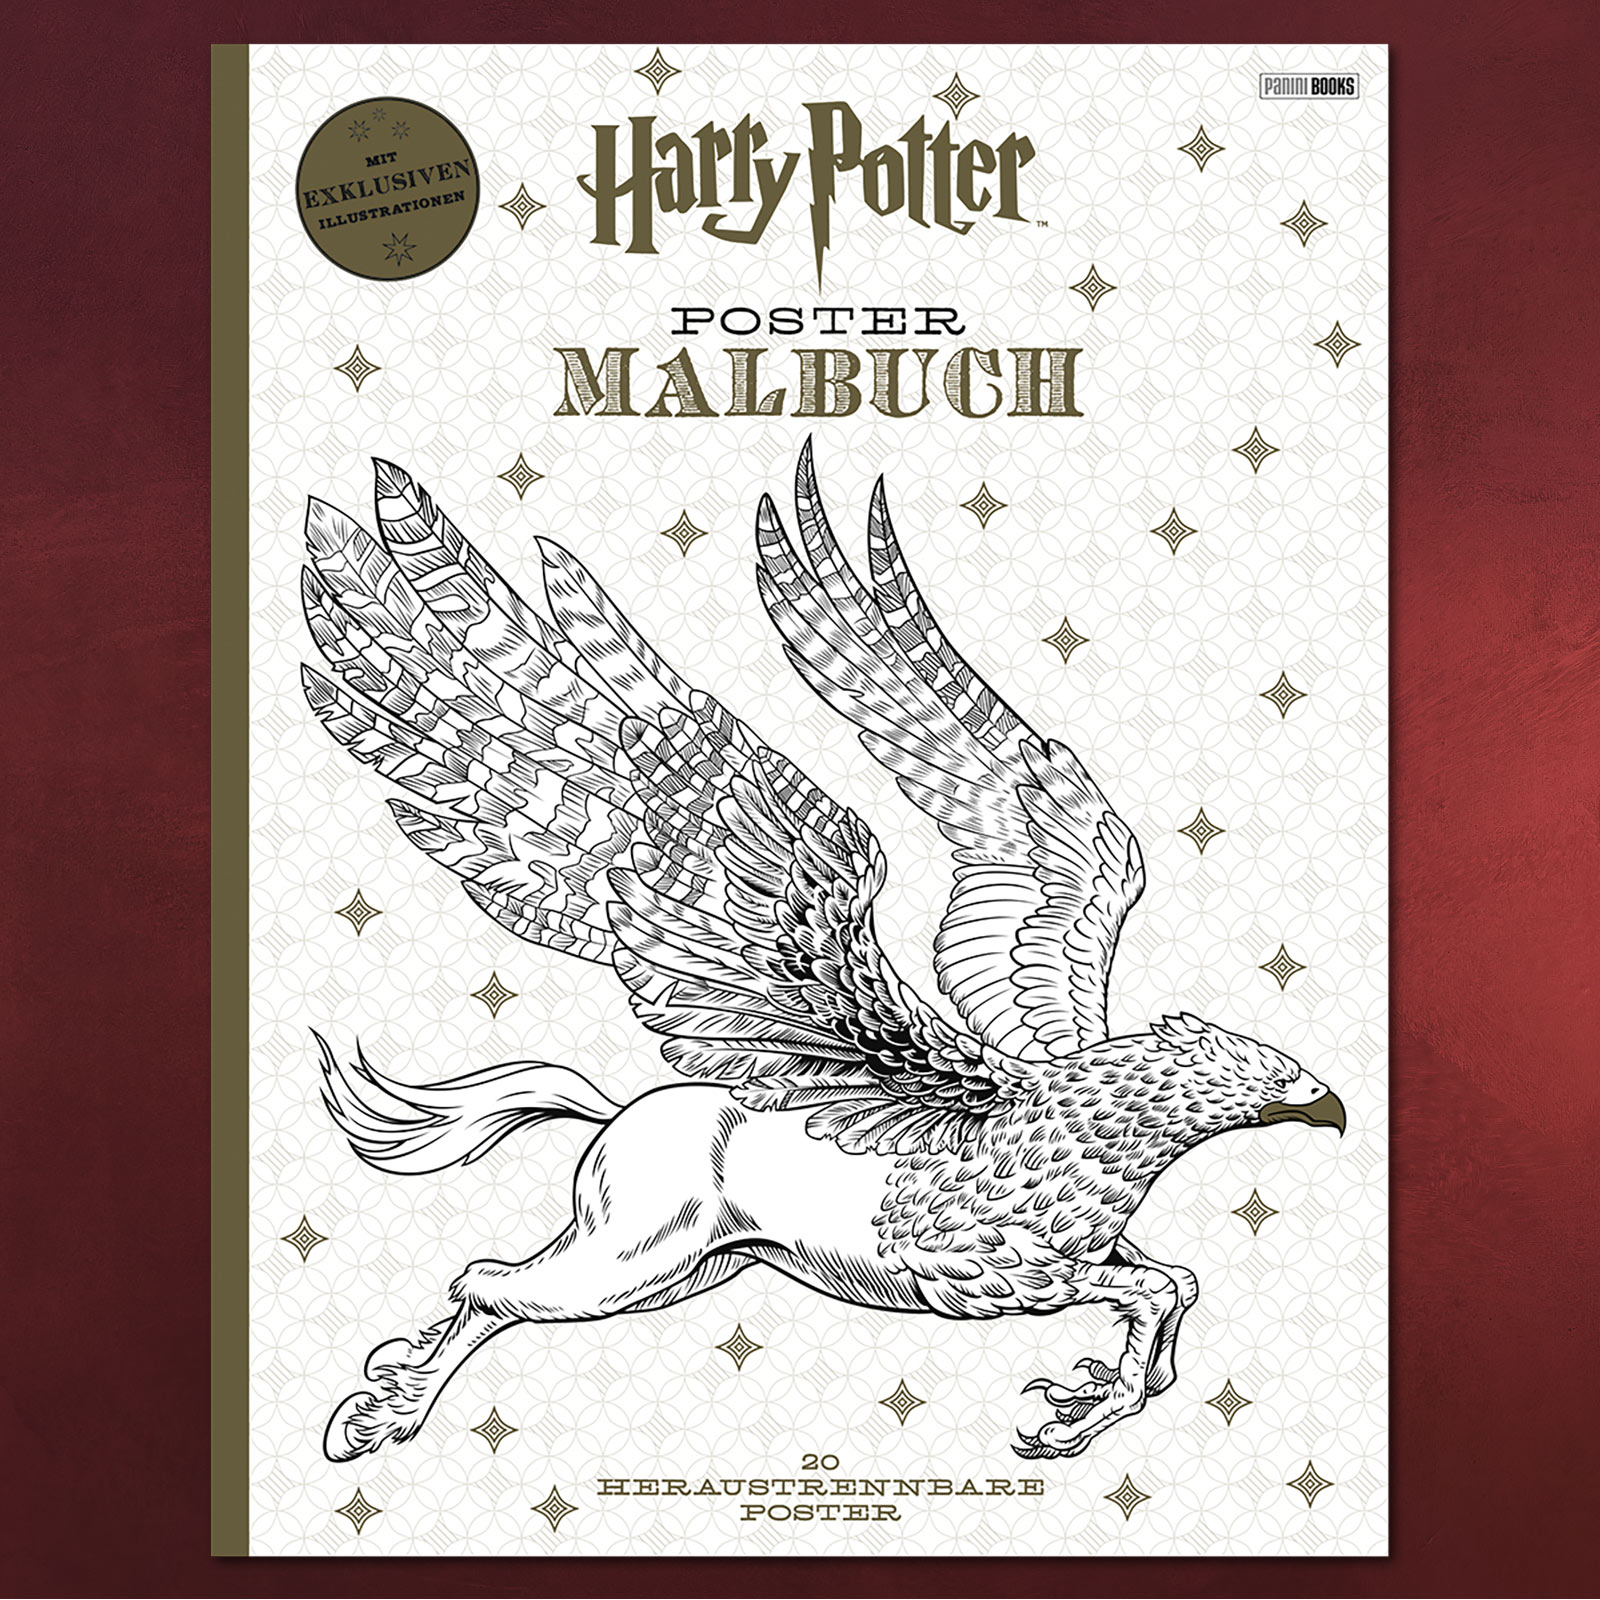 Harry Potter - Poster Malbuch | Elbenwald